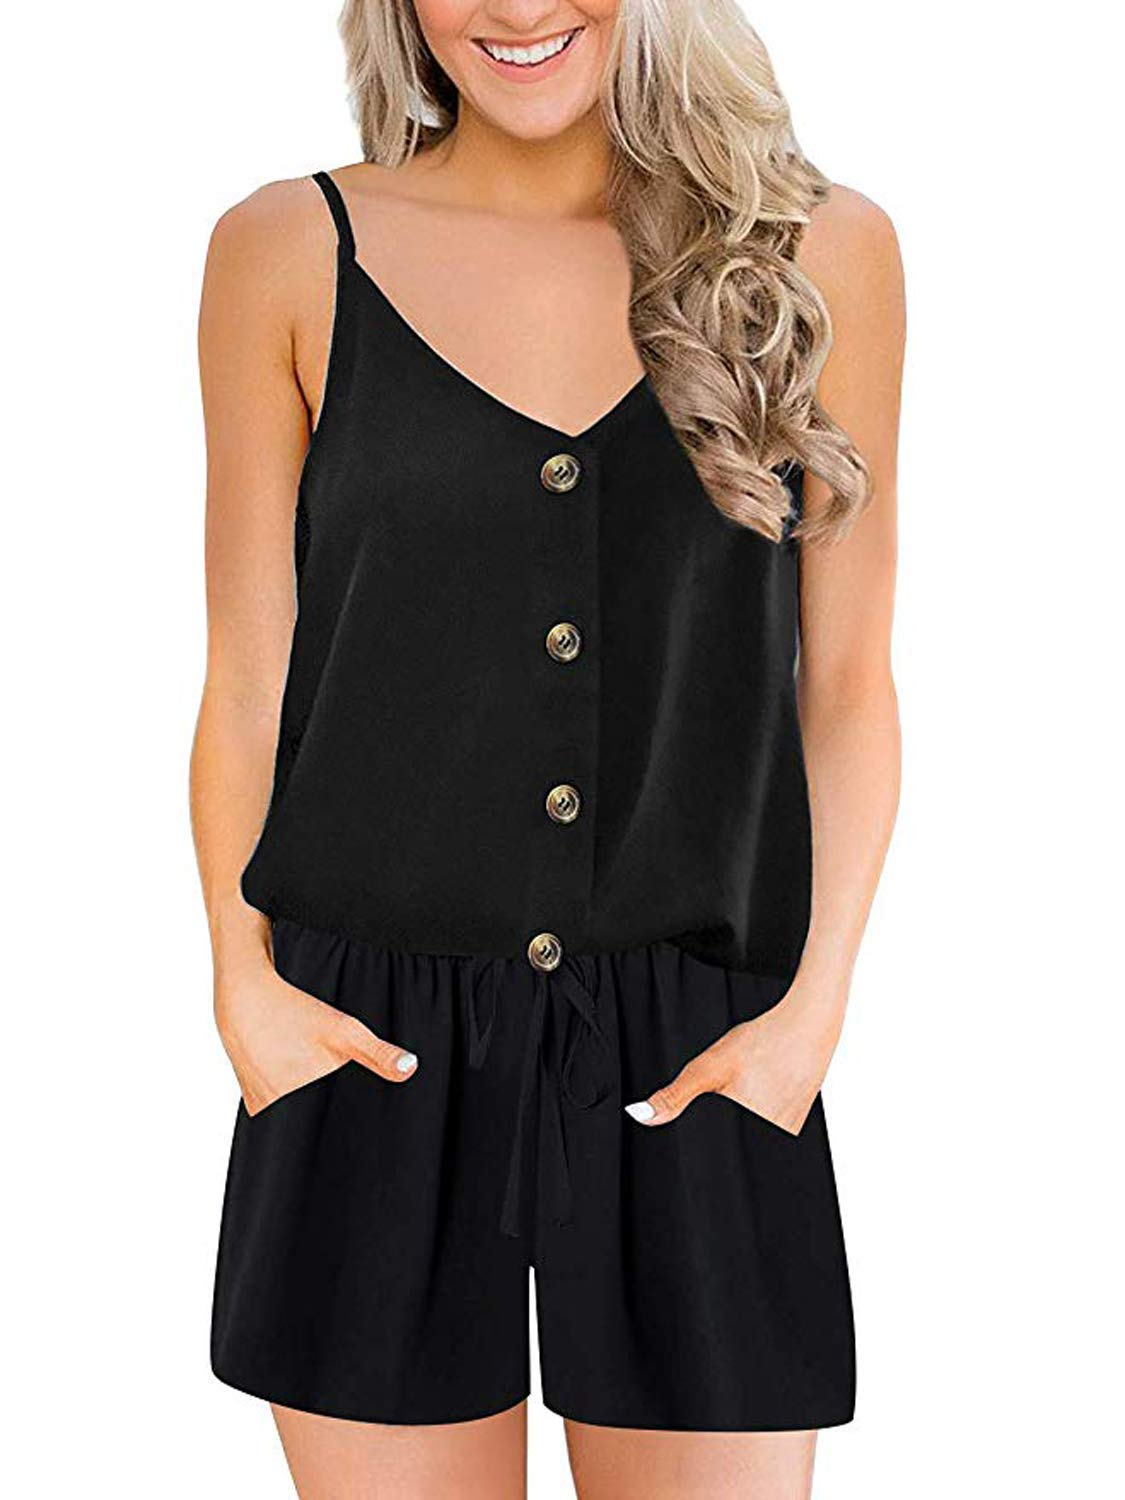 ANRABESS Women Summer Casual Spaghetti Strap Button Down V Neck Criss Cross Back Short Rompers Jumpsuits with Pockets